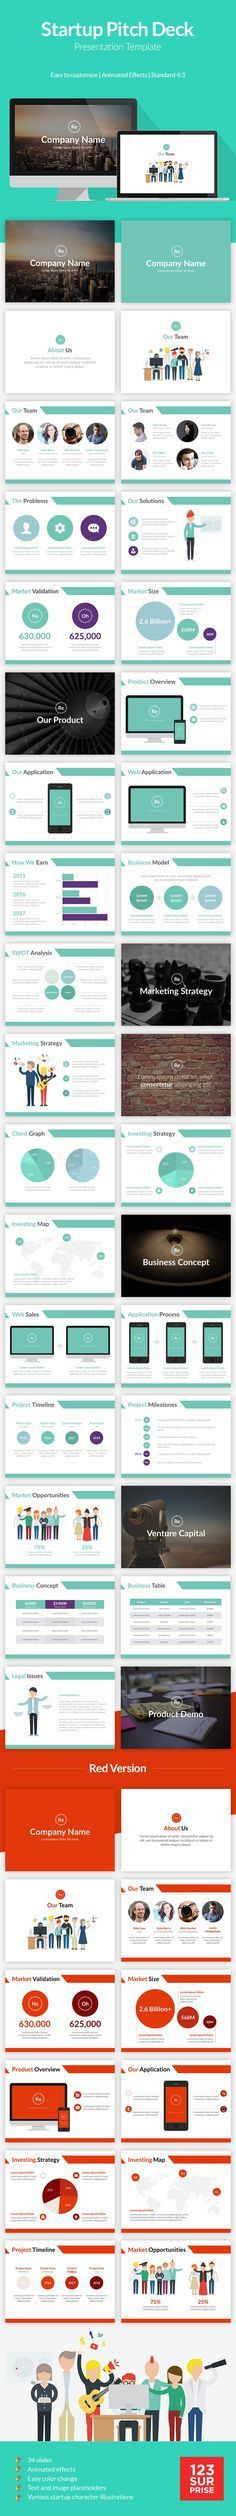 Key ingredients of a Winning Pitch Deck   Presentation Templates ...